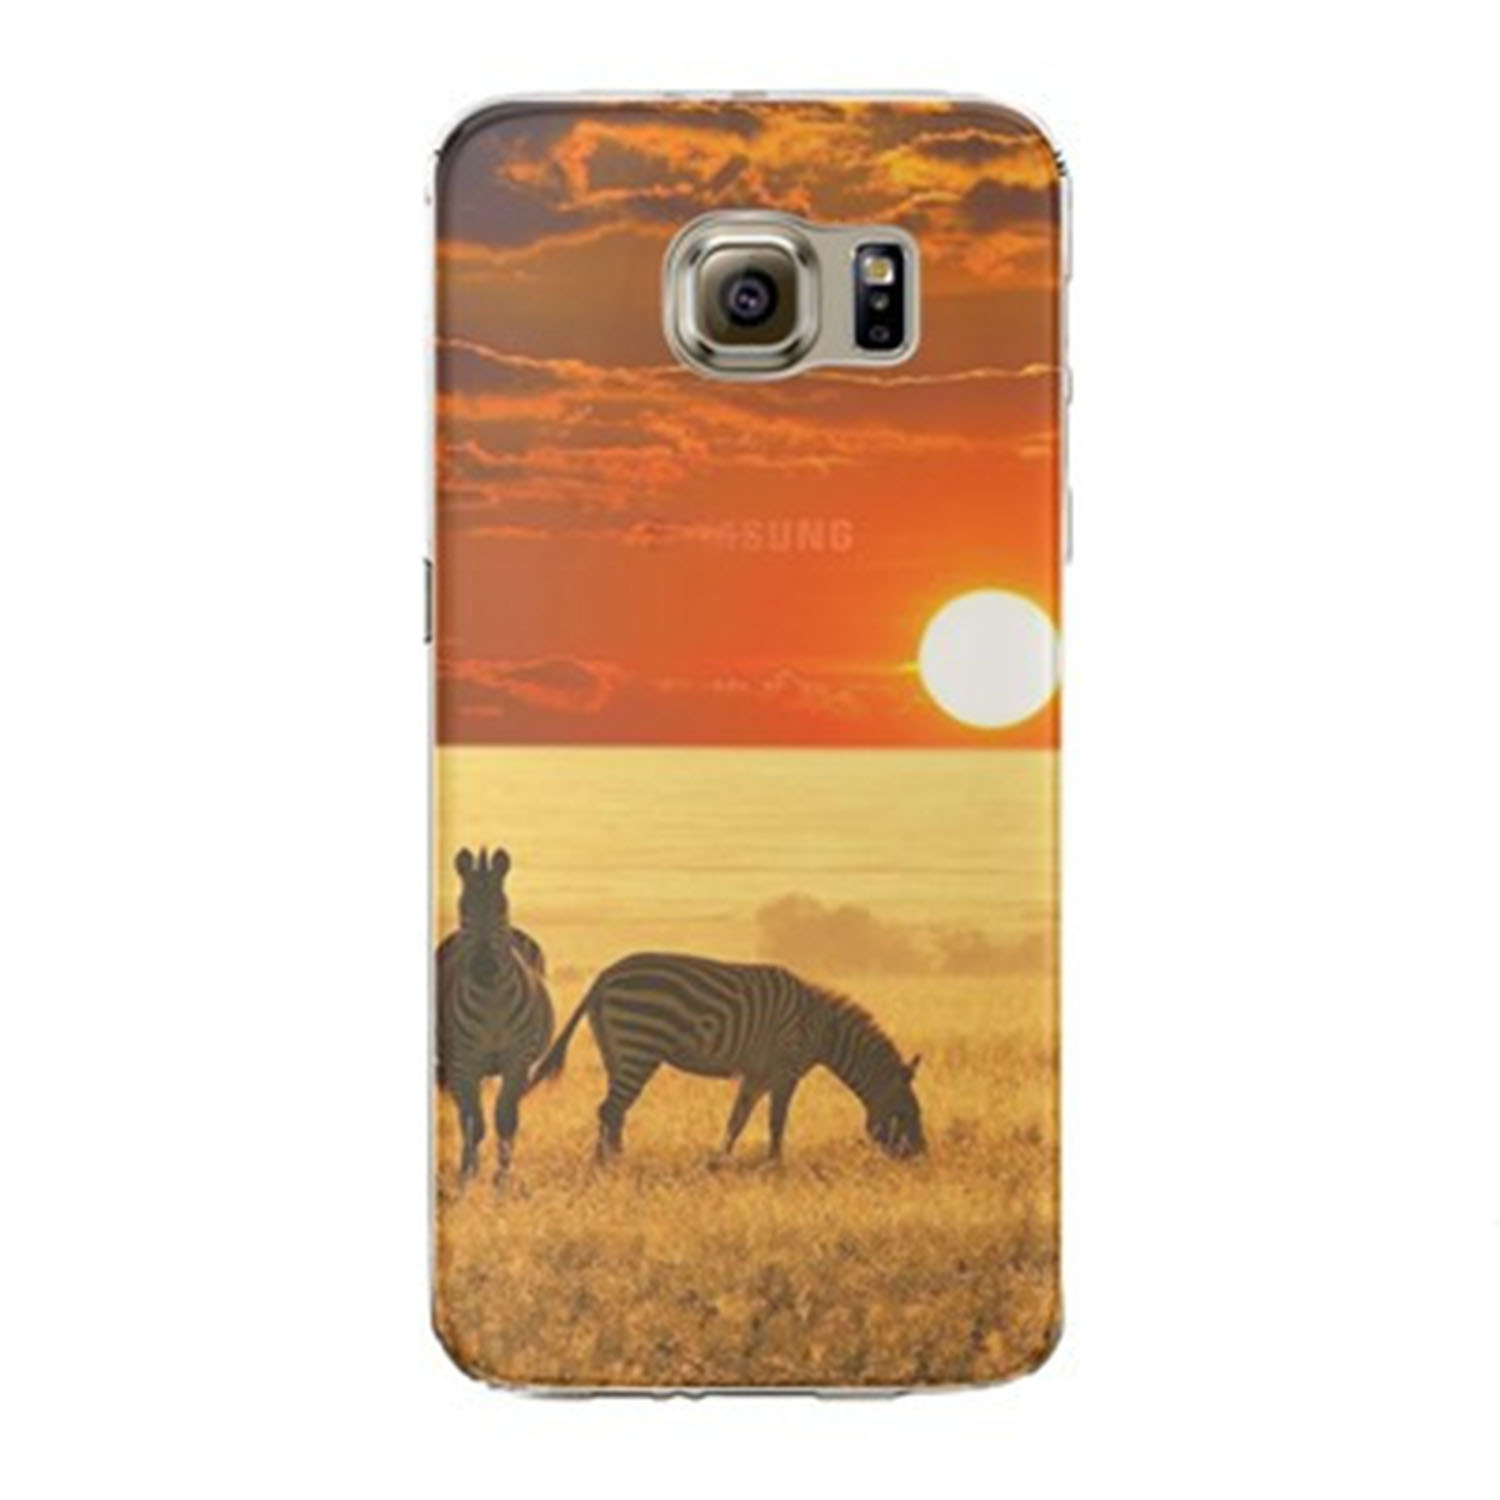 Kritzel Case Collection Galaxy S6 - Nature 336